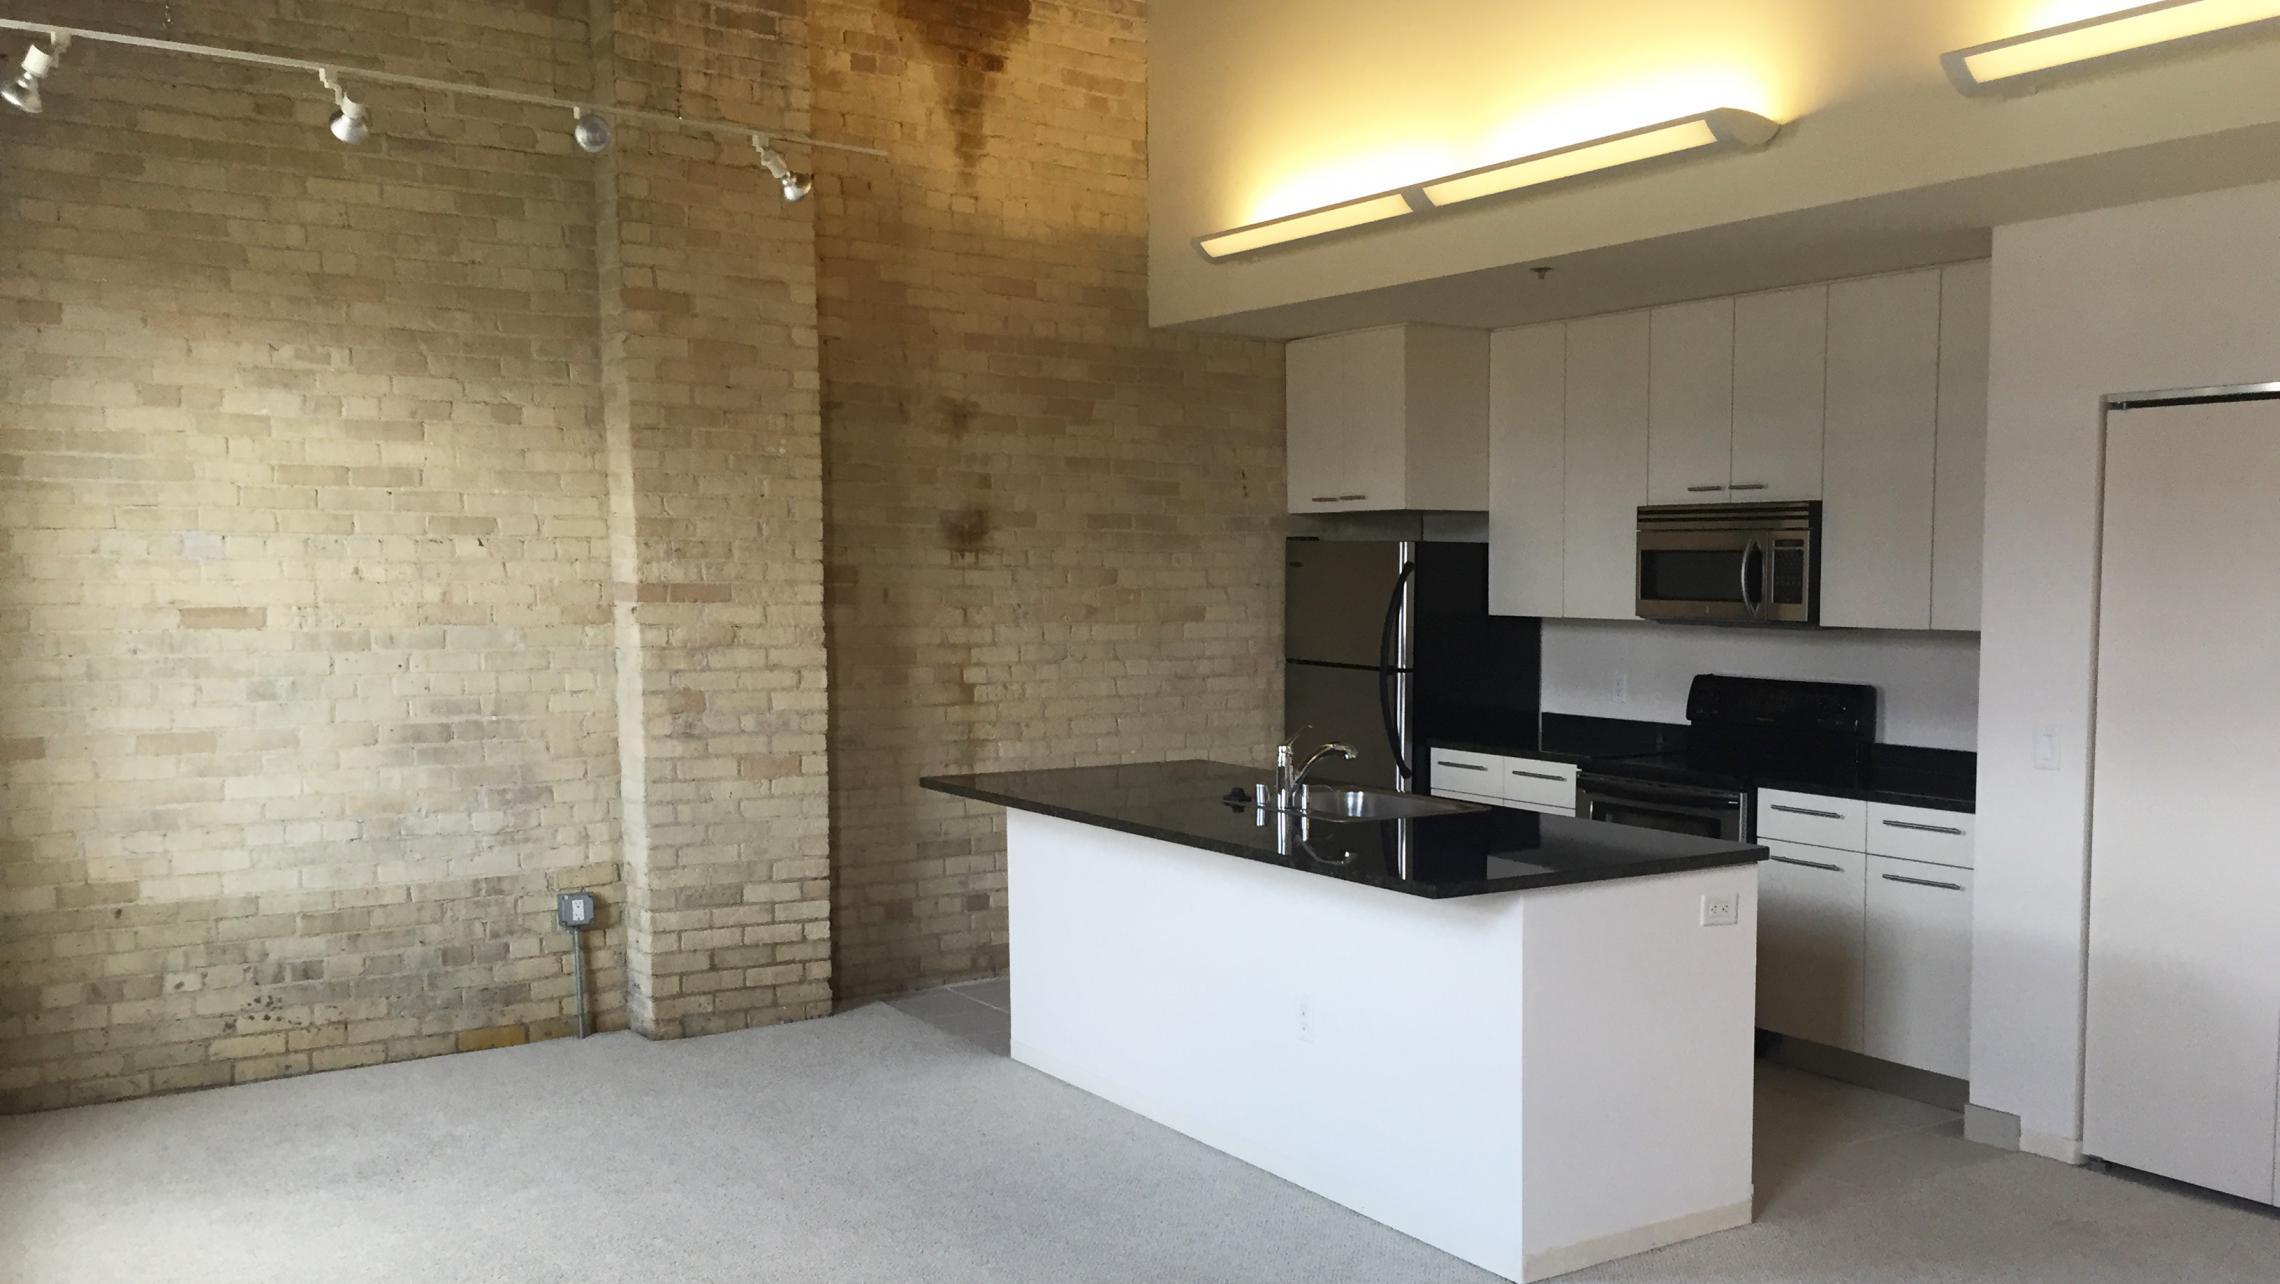 ULI Tobacco Lofts - E309 - Kitchen with Exposed Brick